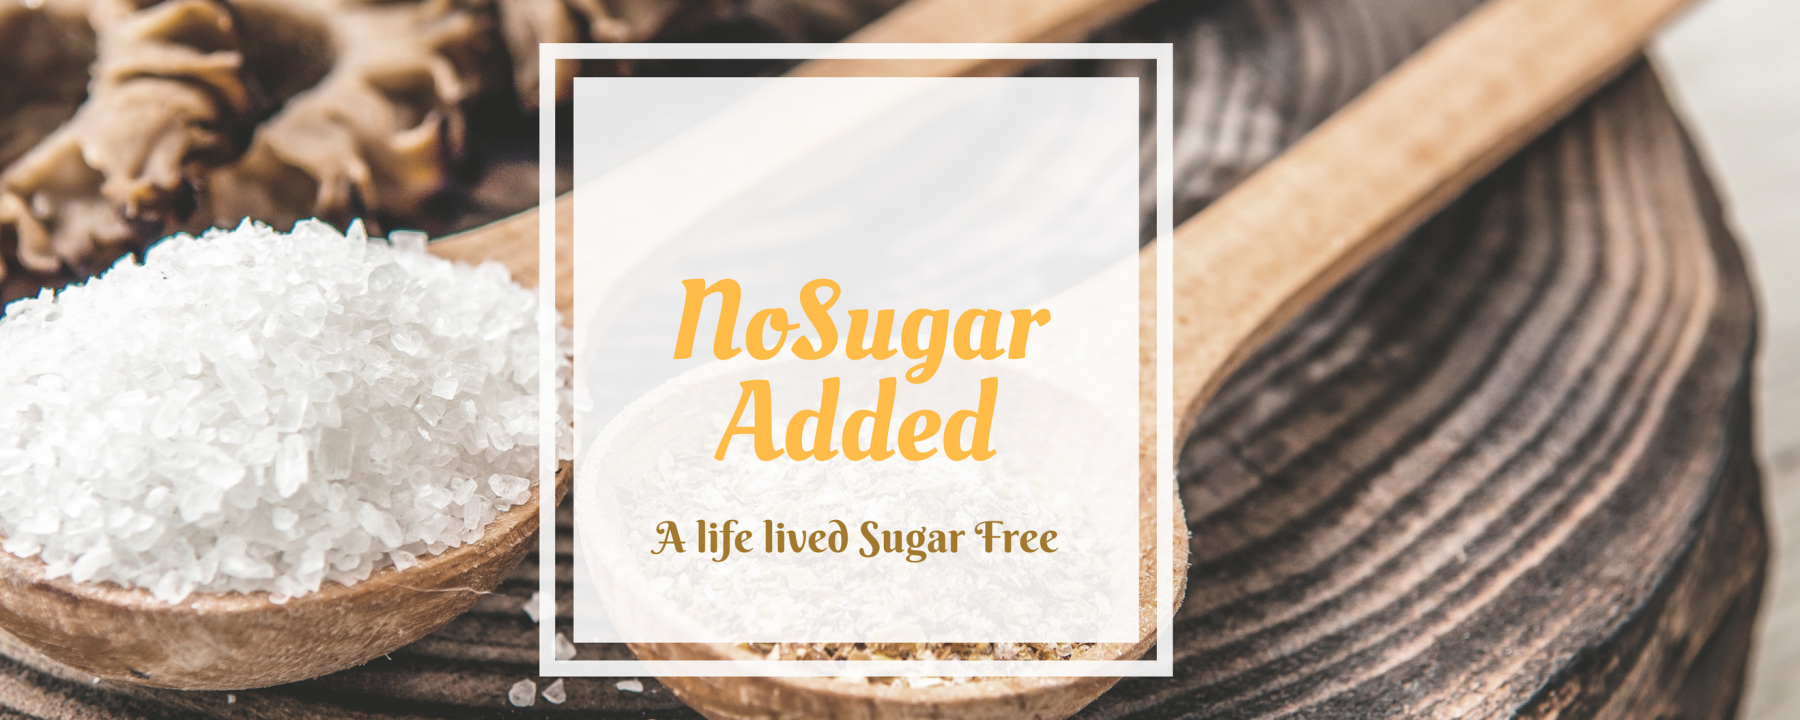 NoSugar-Added